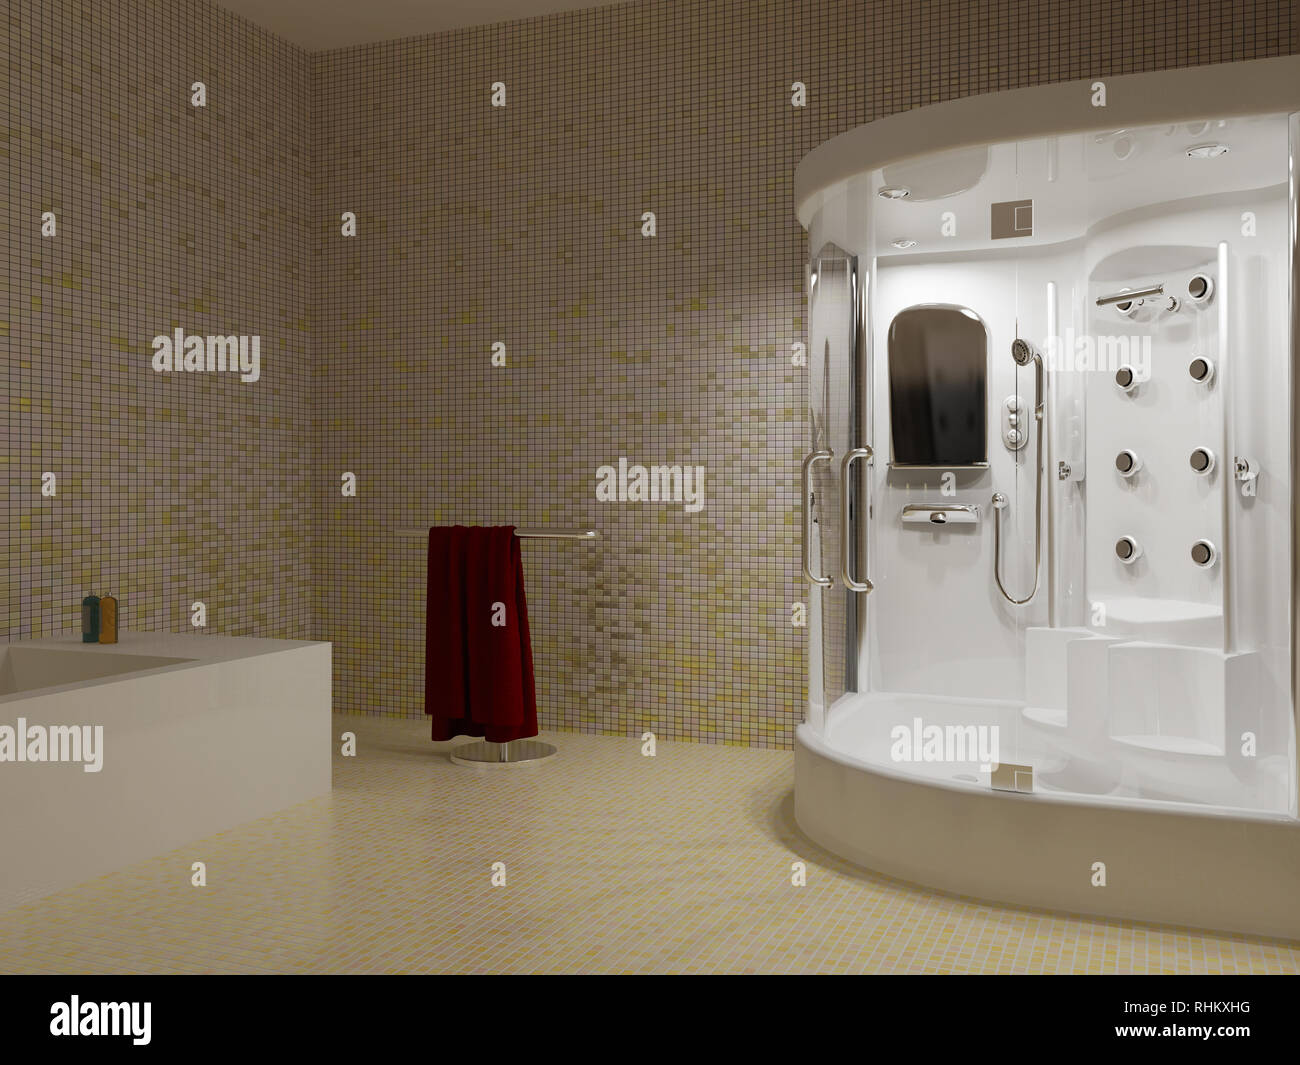 Exceptionnel High Resolution Image Interior. A Bathroom In Modern Style. 3d Illustration.